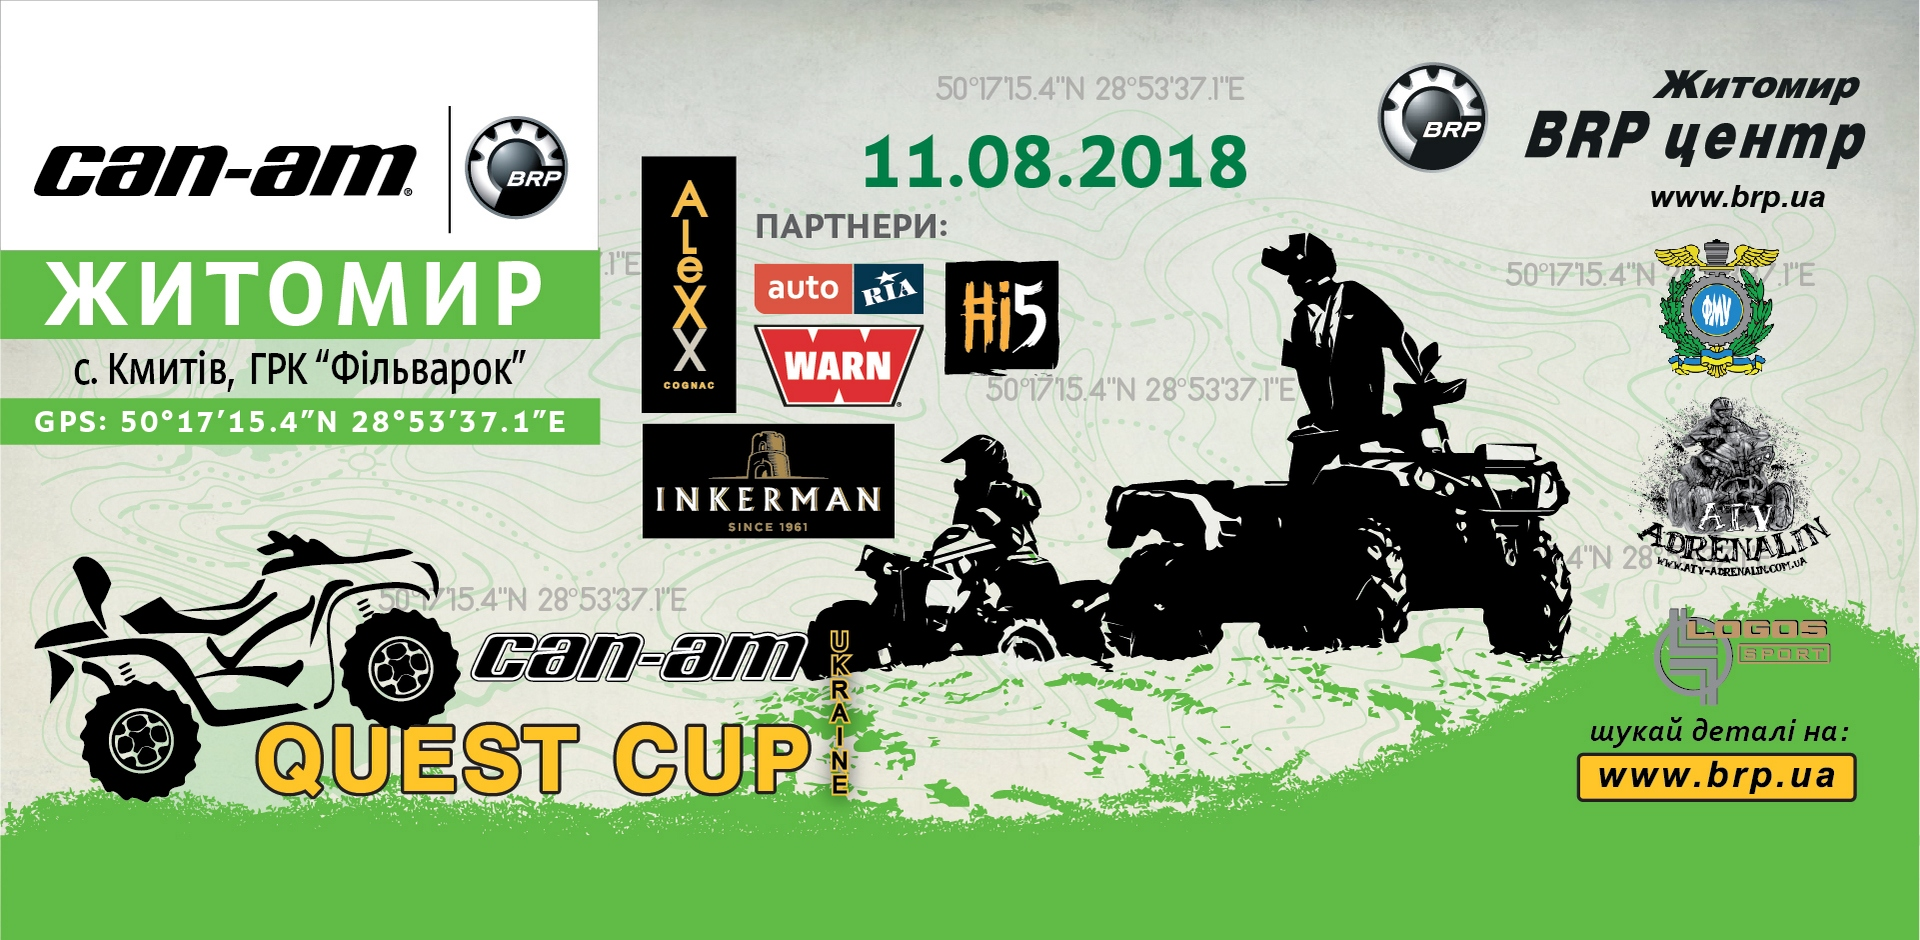 Серия «CAN-AM QUEST CUP 2018». 11 августа. Житомир!